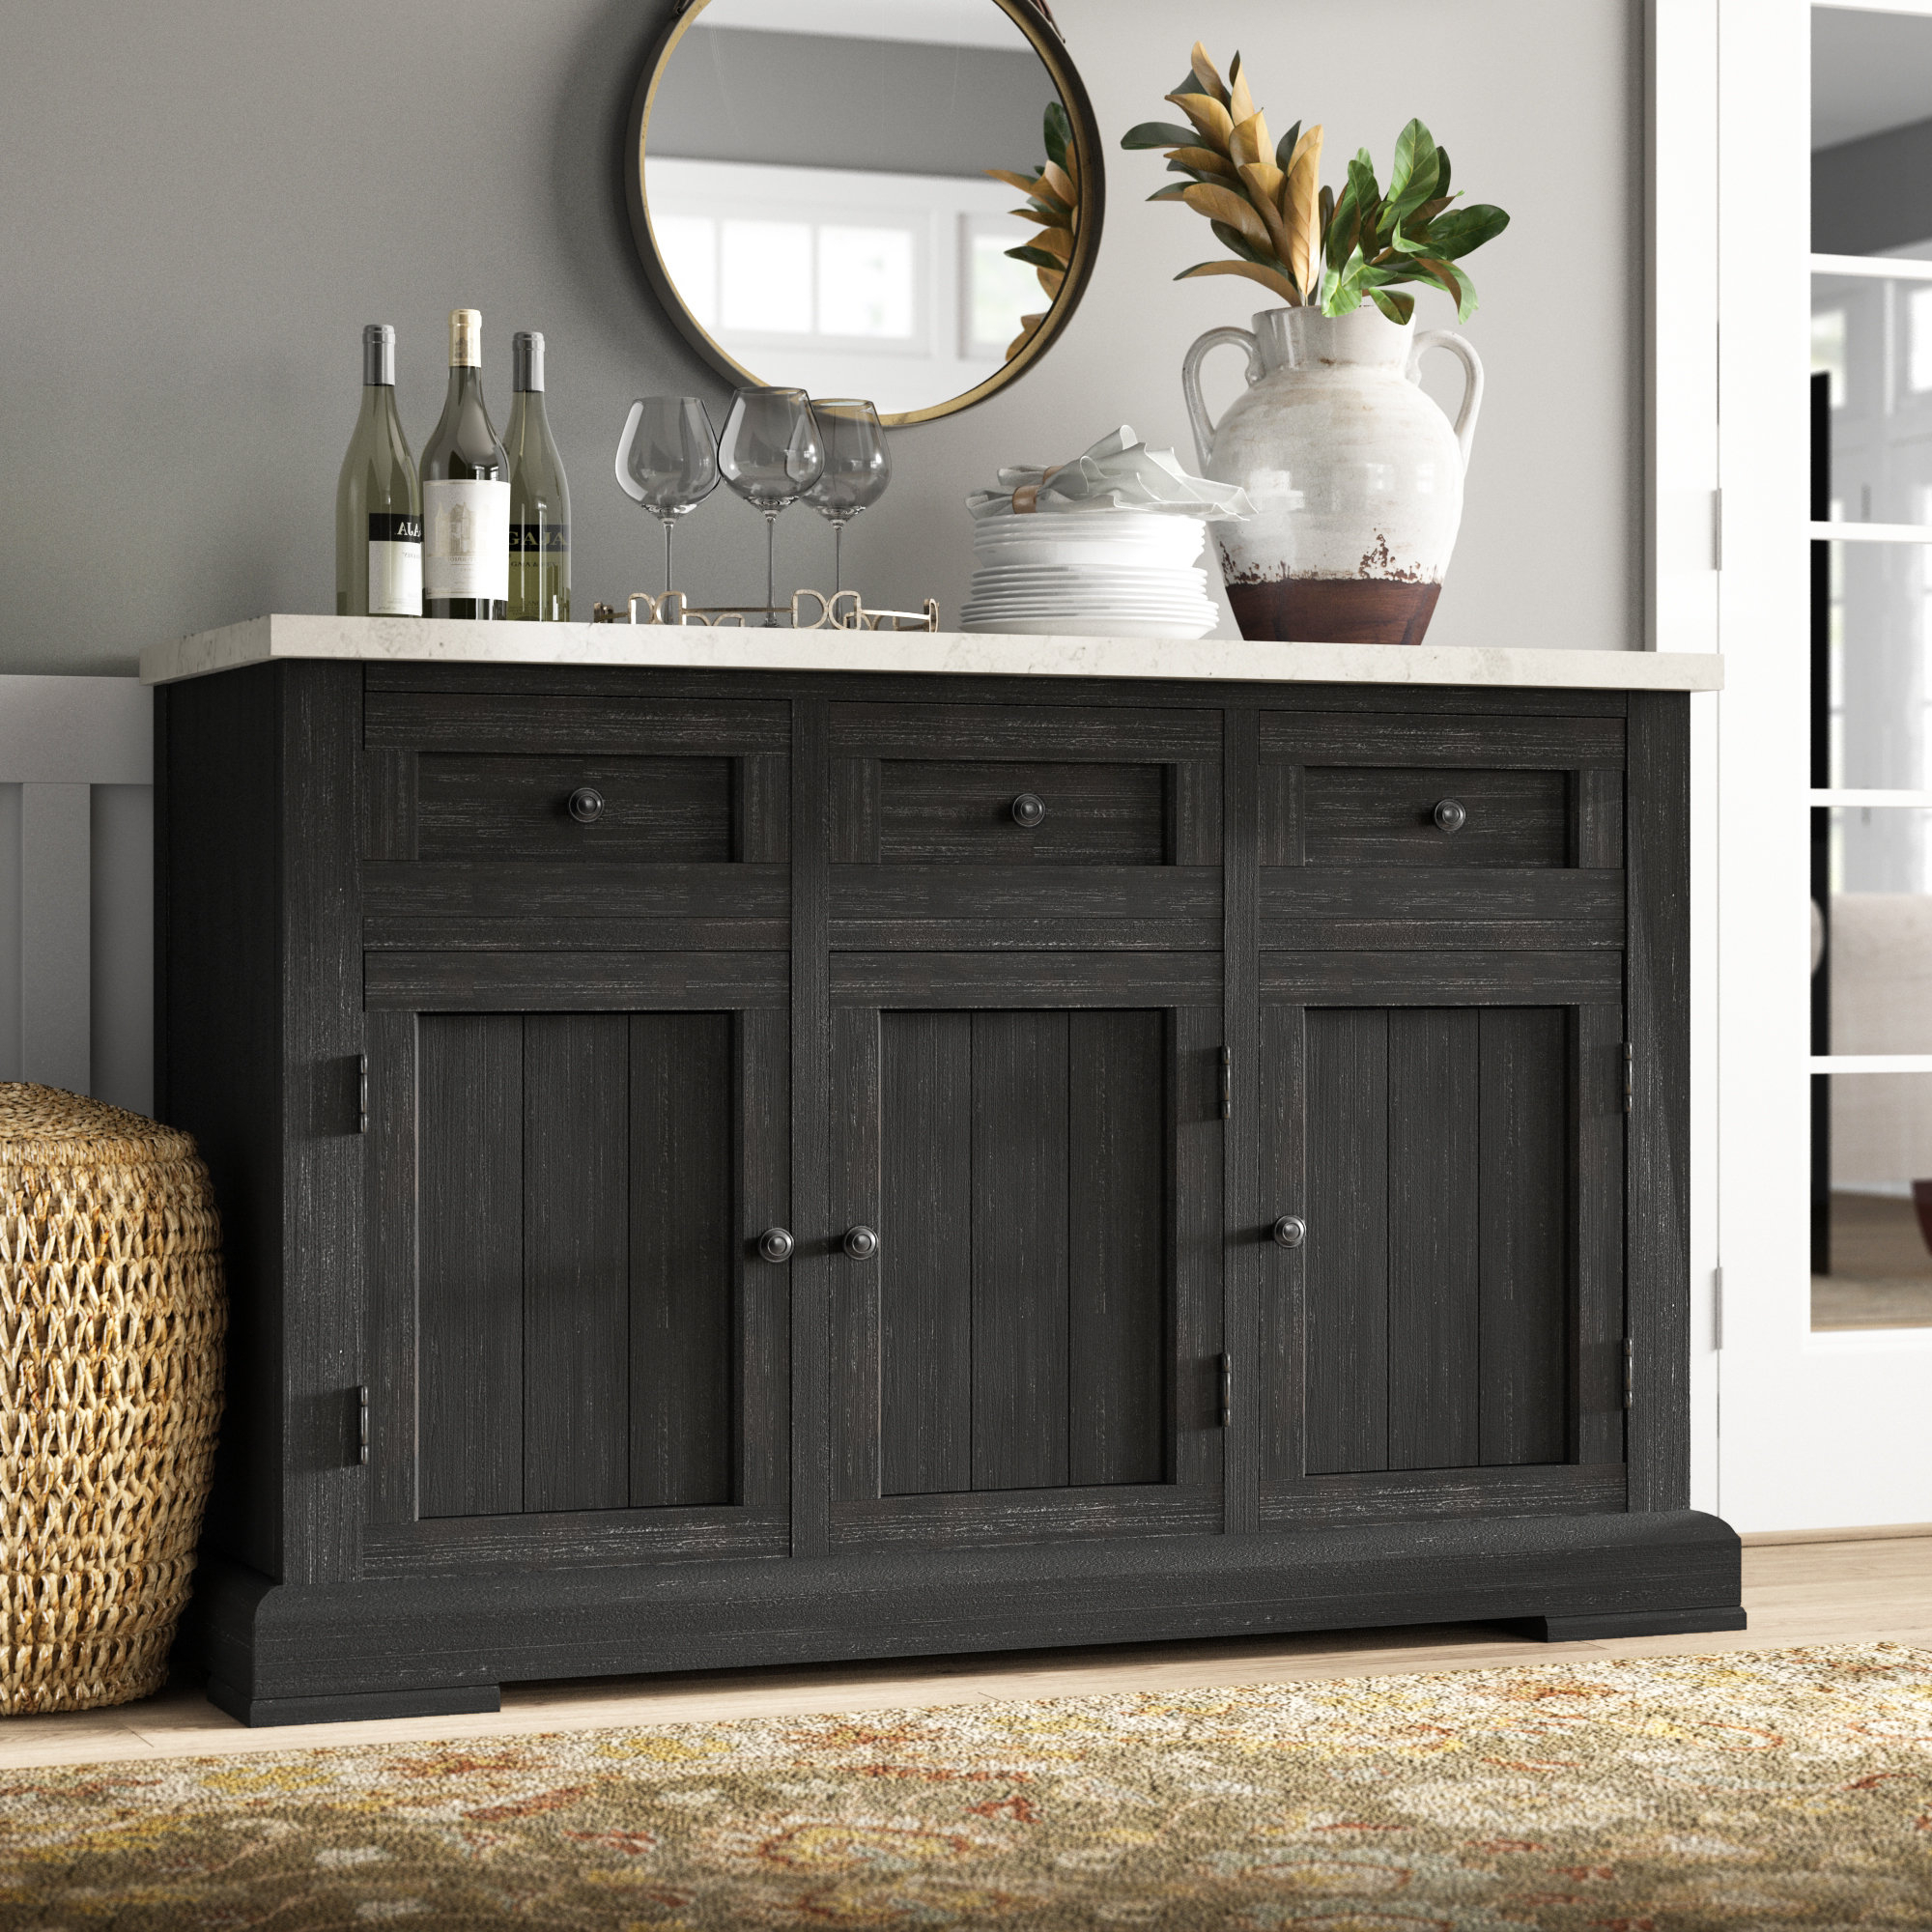 Chicoree Charlena Sideboards Regarding Preferred Ballintoy Wooden Sideboard (View 19 of 20)